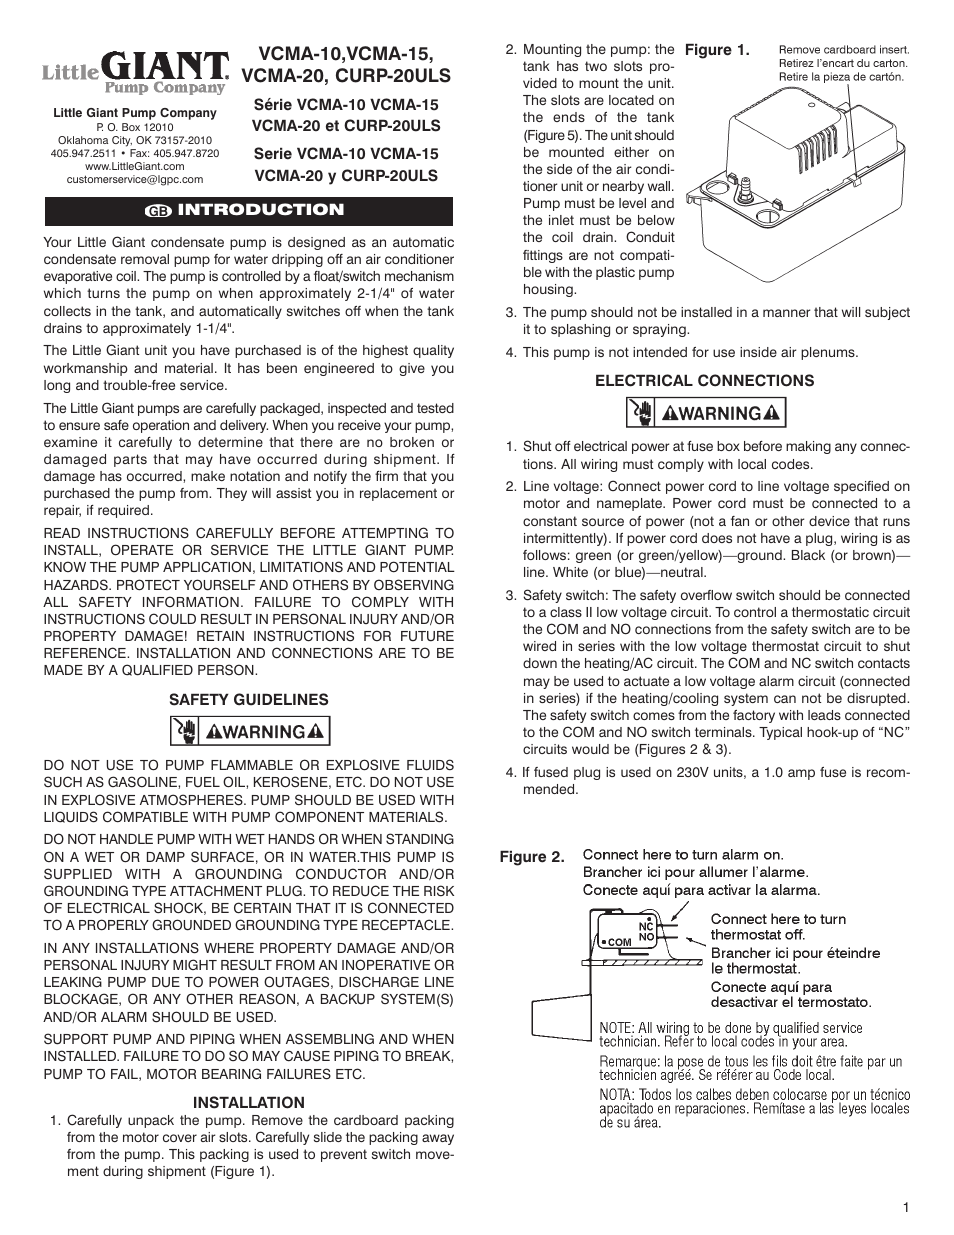 little giant ladder curp 20uls page1 little giant ladder curp 20uls user manual 8 pages also for wiring diagram for little giant pump at edmiracle.co